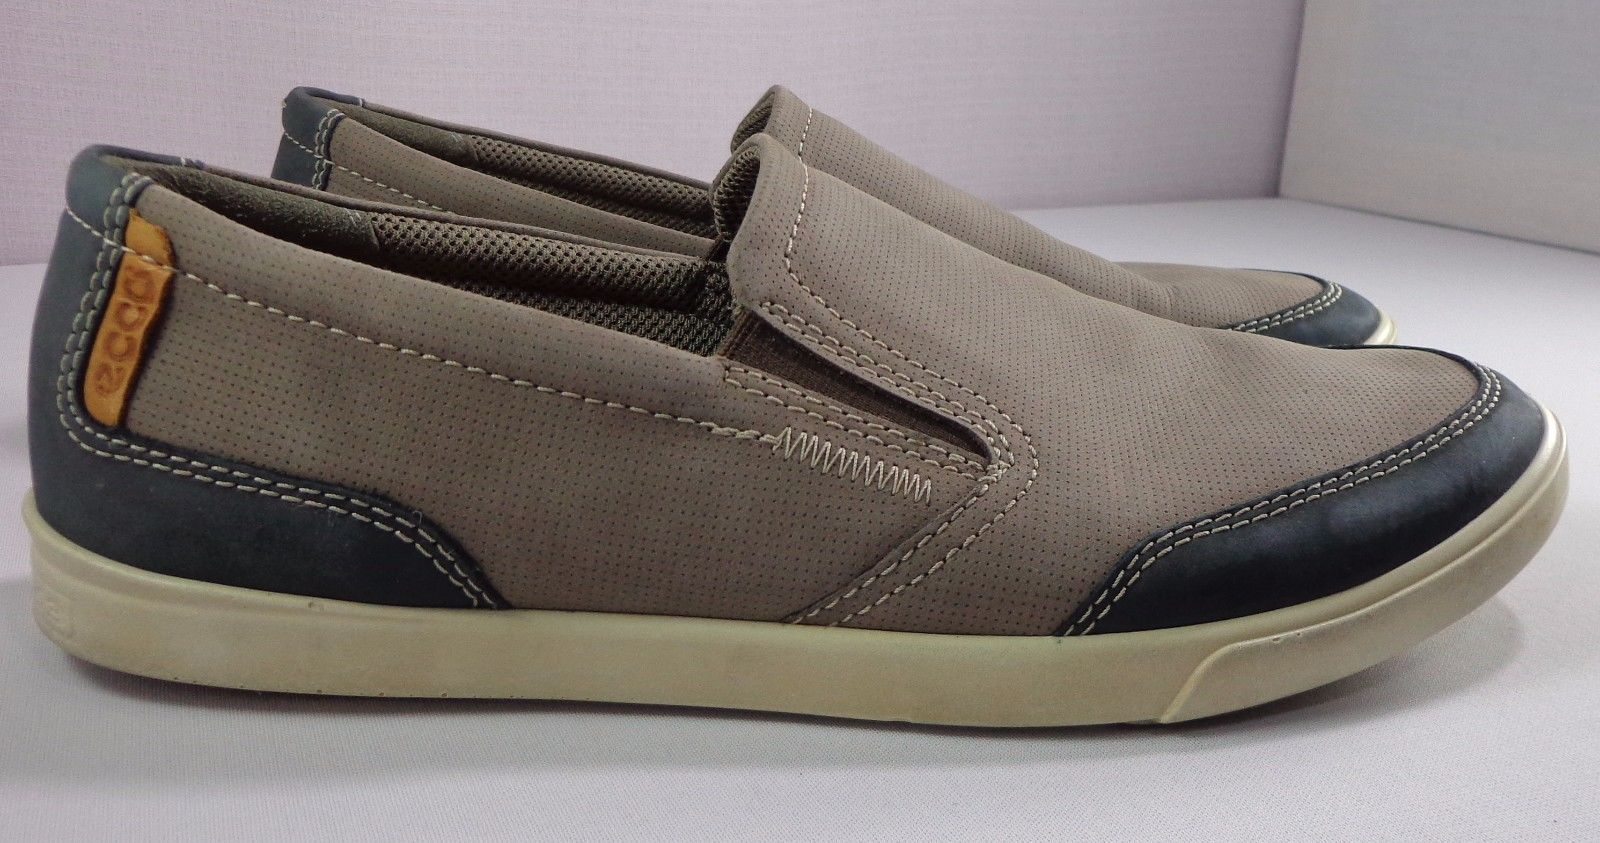 a2ca24439d S l1600. S l1600. Previous. Ecco Mens Casual Slip On Shoes Size 42 8 - 8.5  Taupe Nubuck Leather